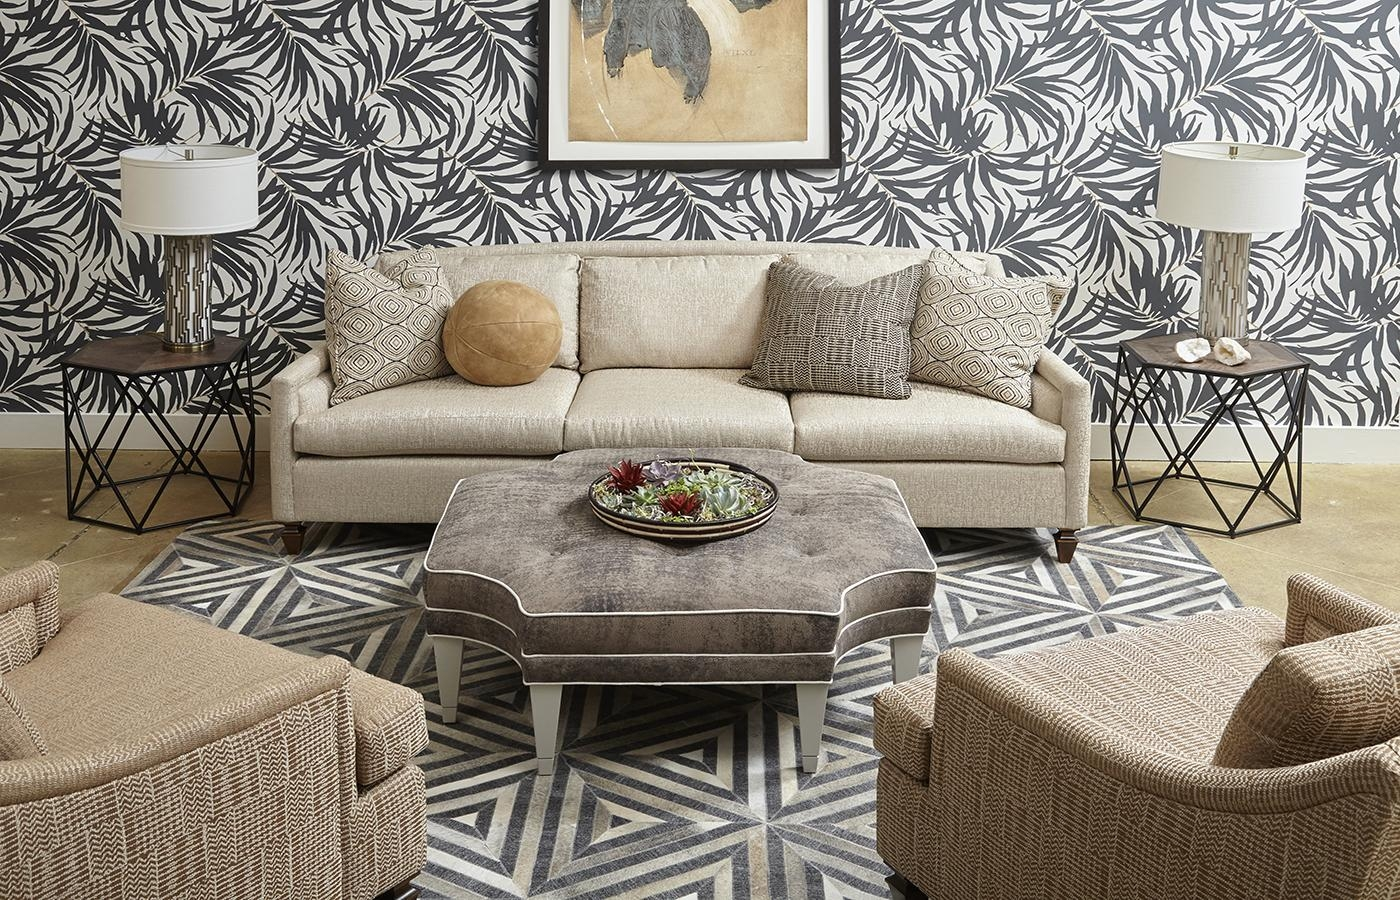 Norwalk Furniture For Norwalk Sofa And Chairs (View 8 of 20)